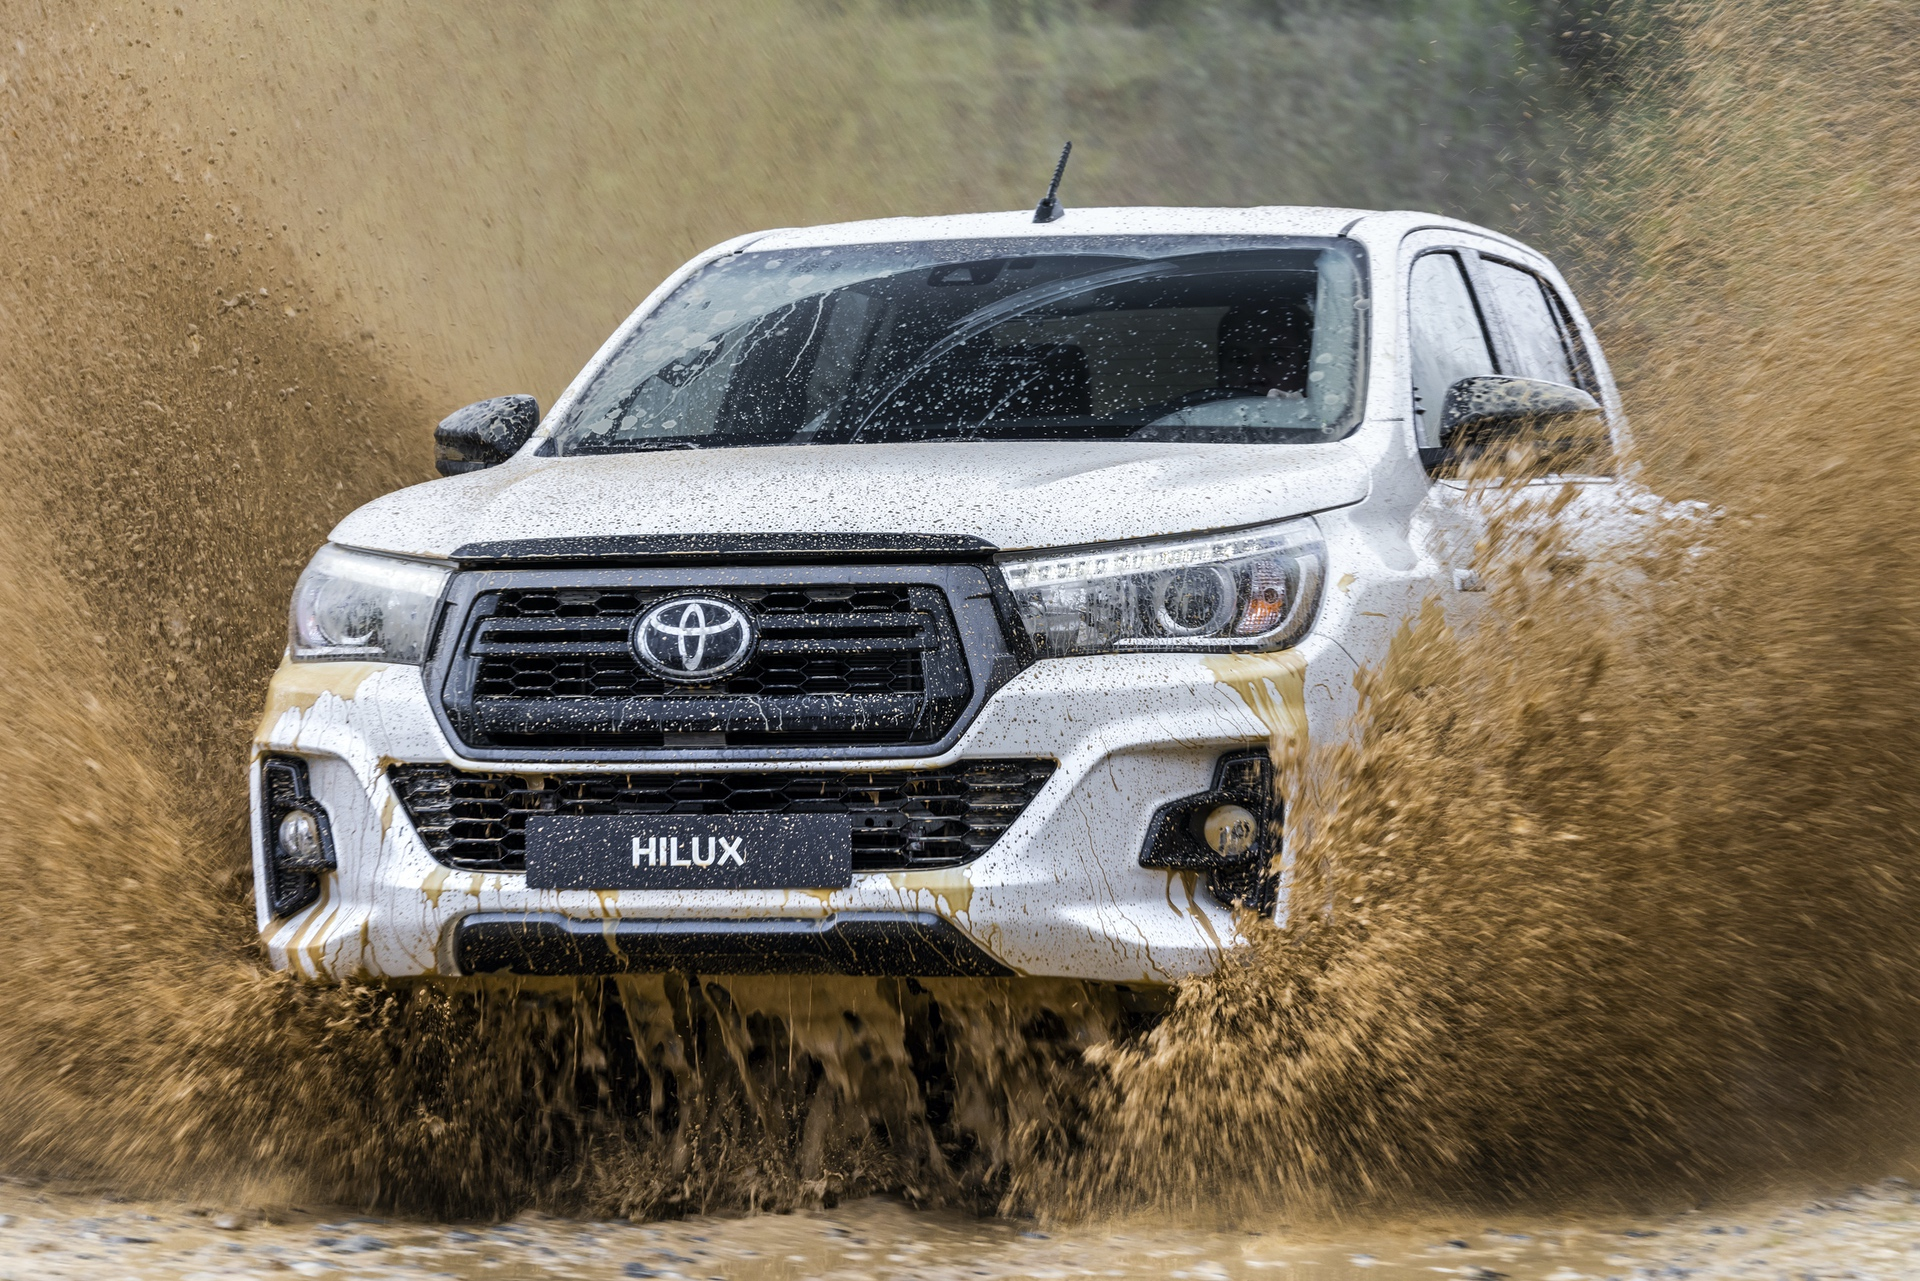 Toyota_Hilux_Special_Edition_0080